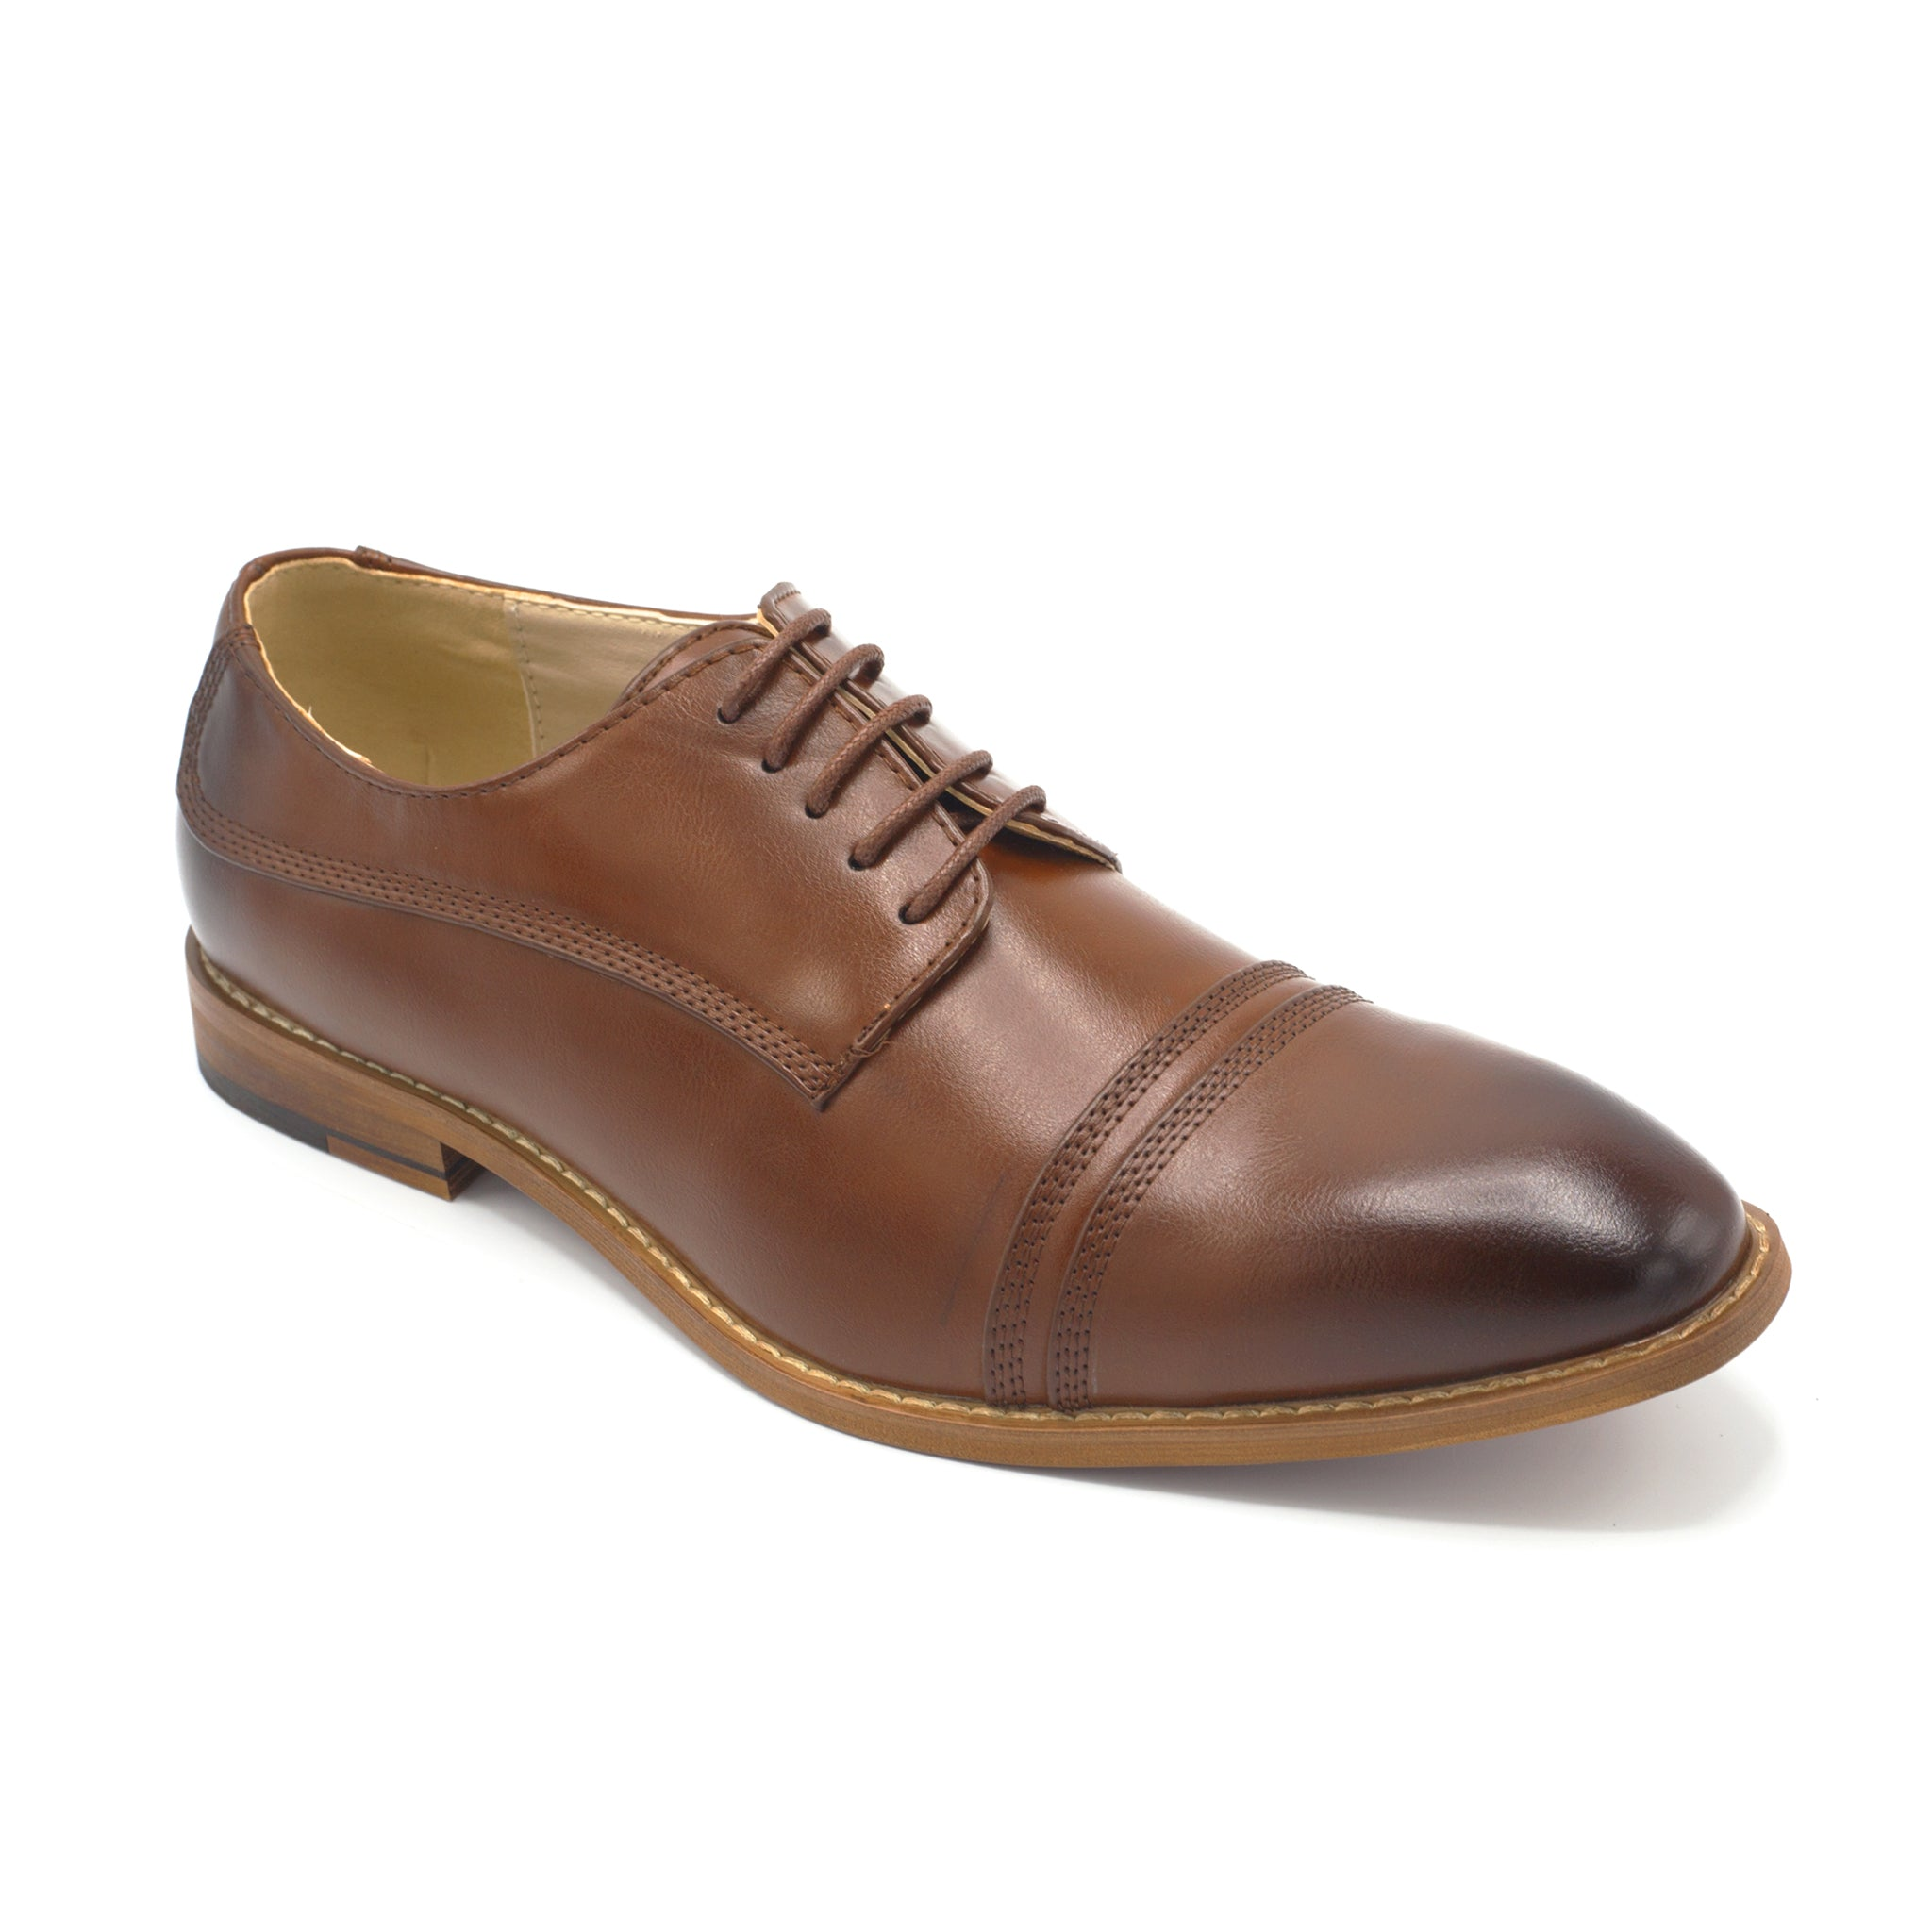 ANTONIO CERRELLI DRESS SHOES/COGNAC